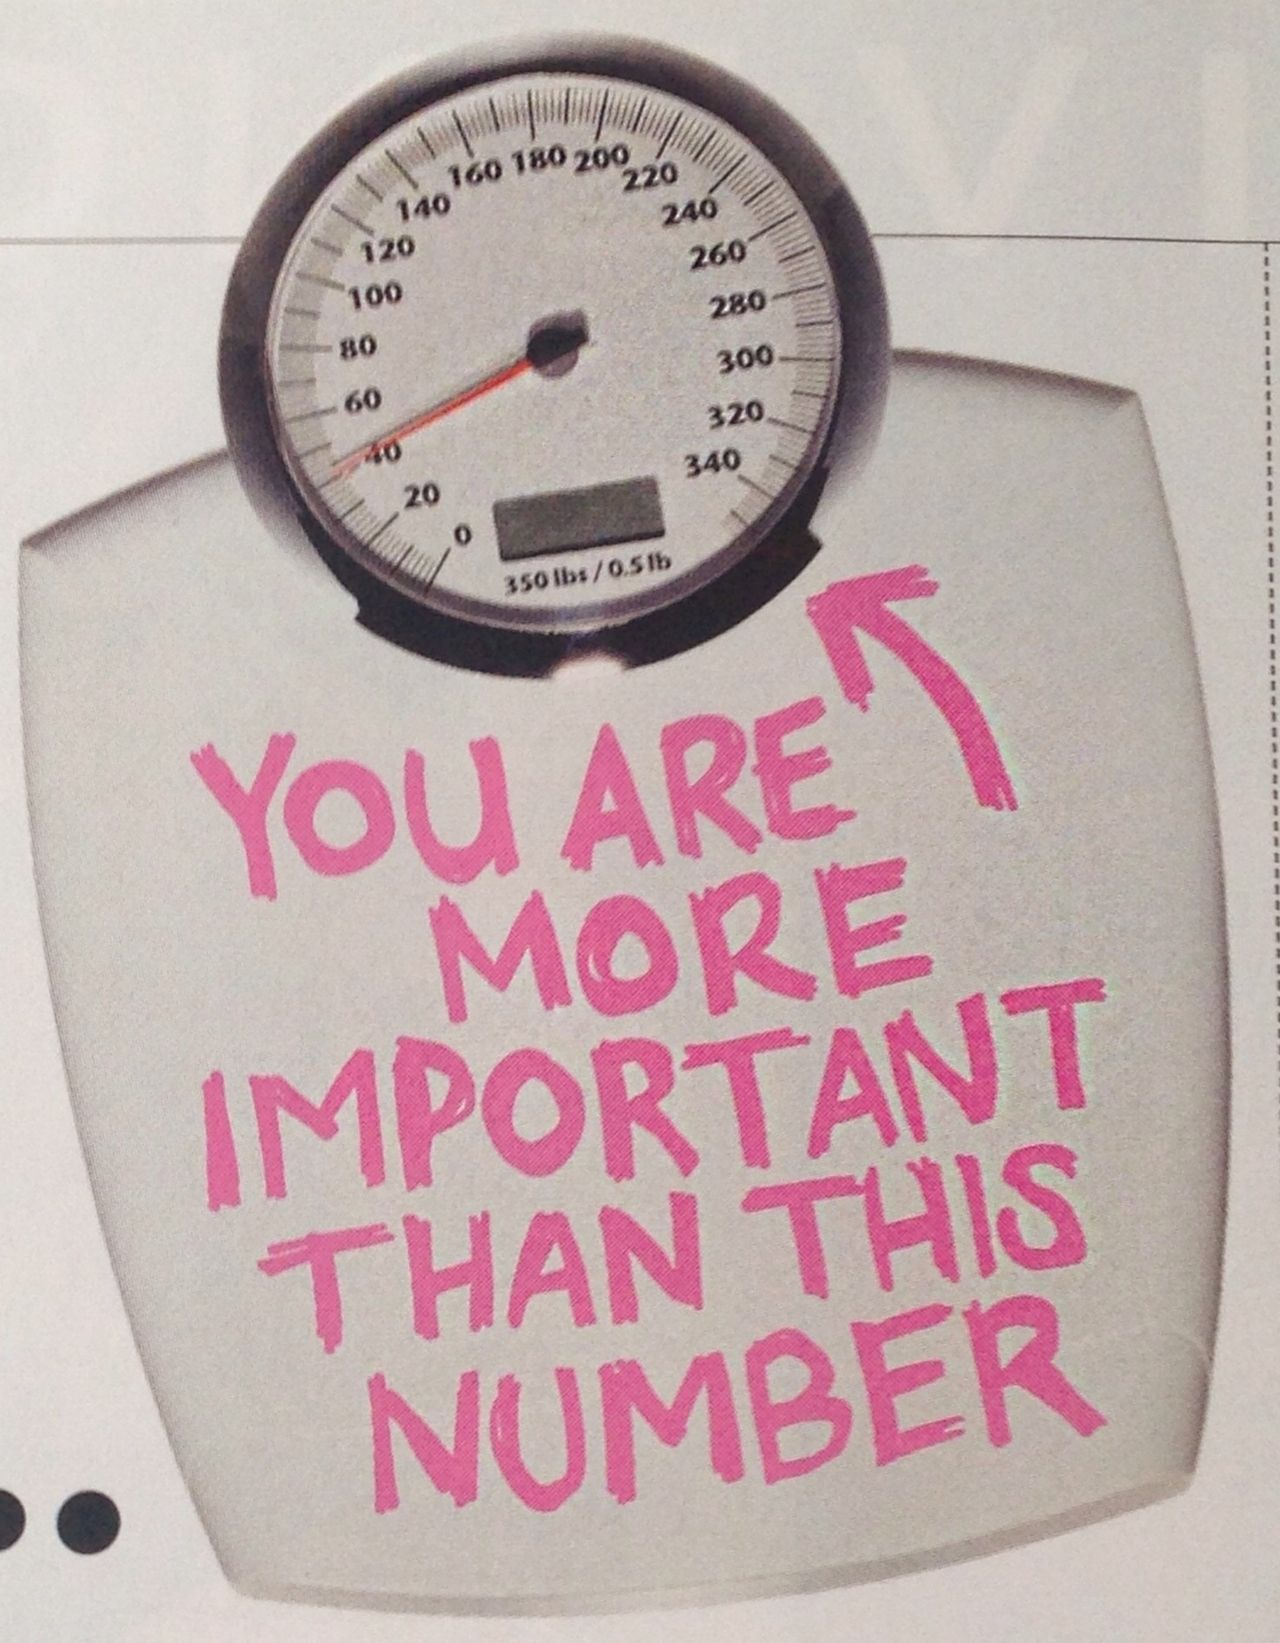 are more important than a number!